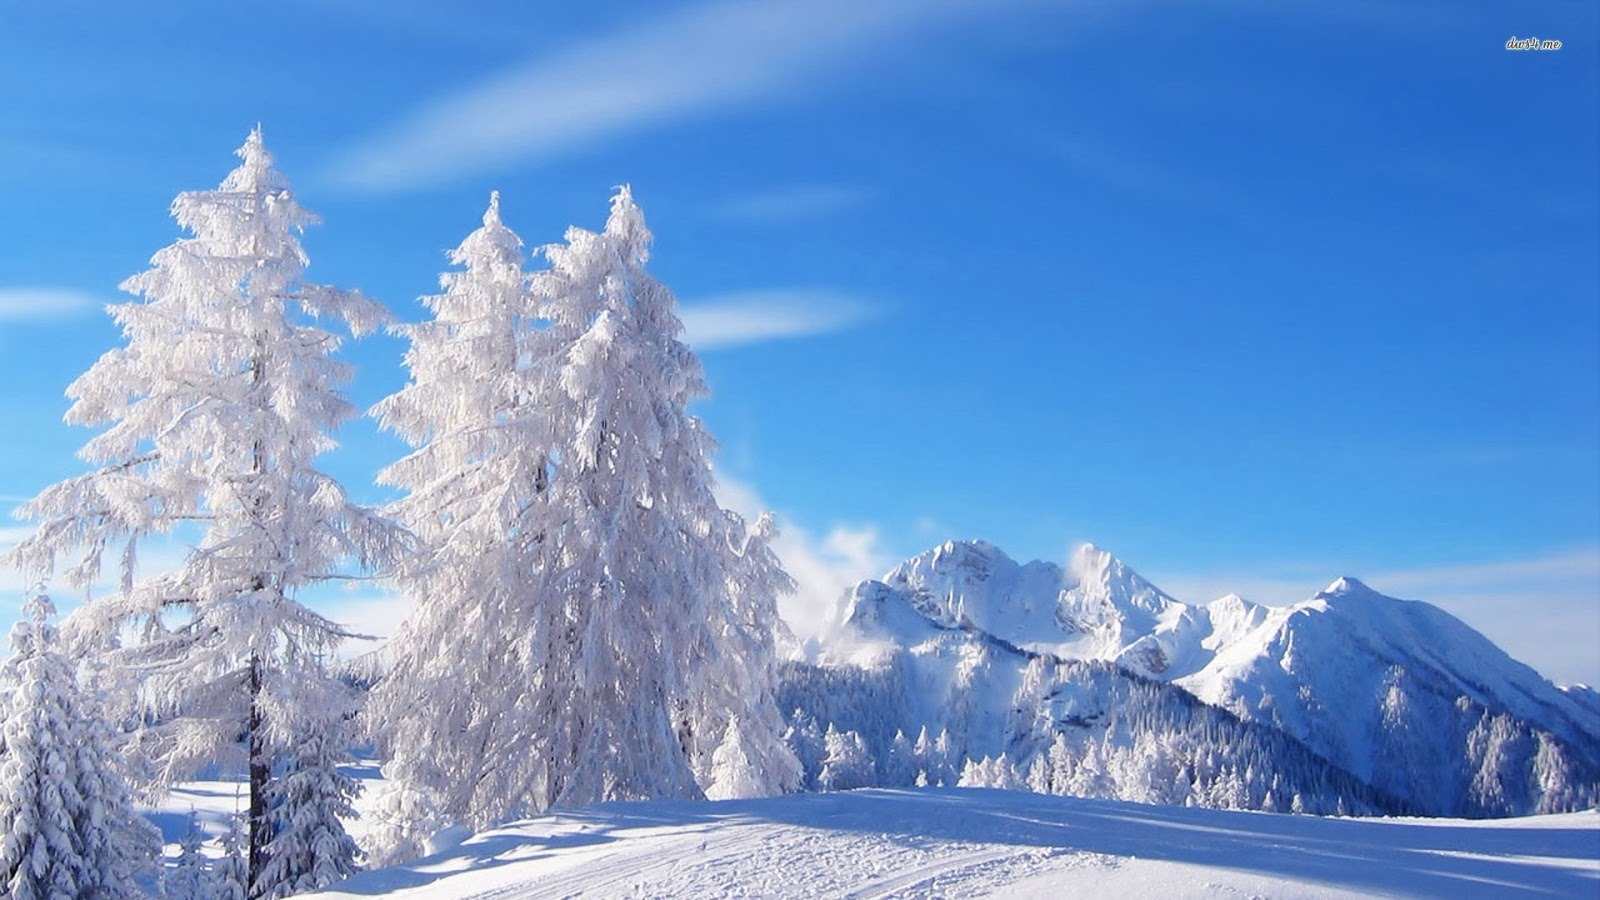 Winter Wonderland Tumblr Background Wallpaper 1600x900